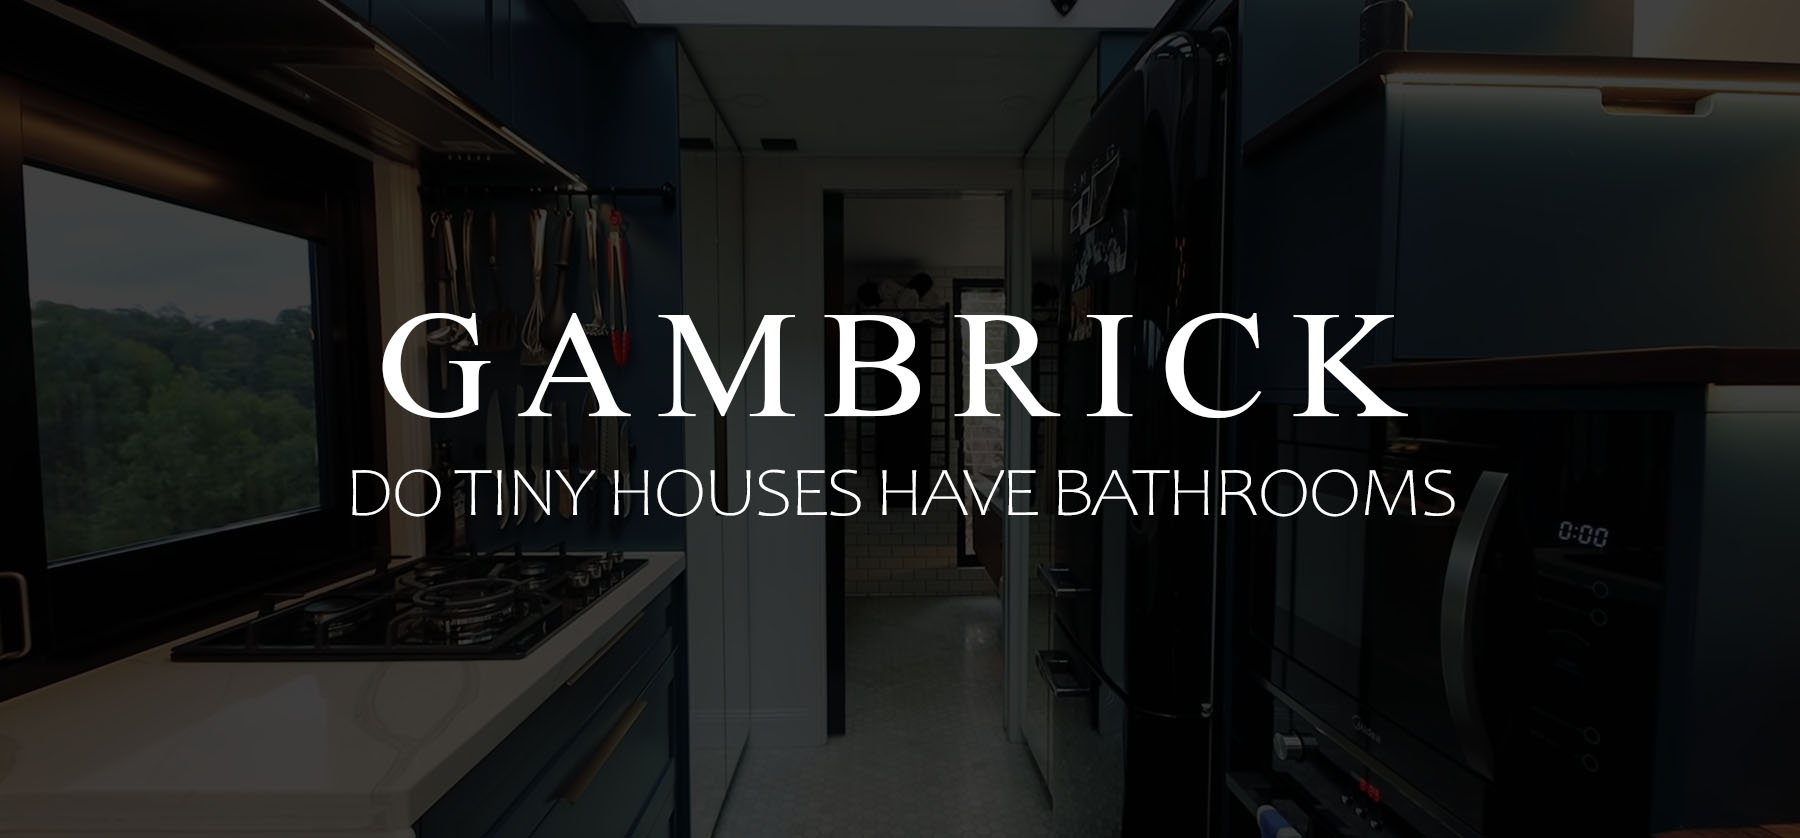 Do tiny homes have bathrooms banner 1